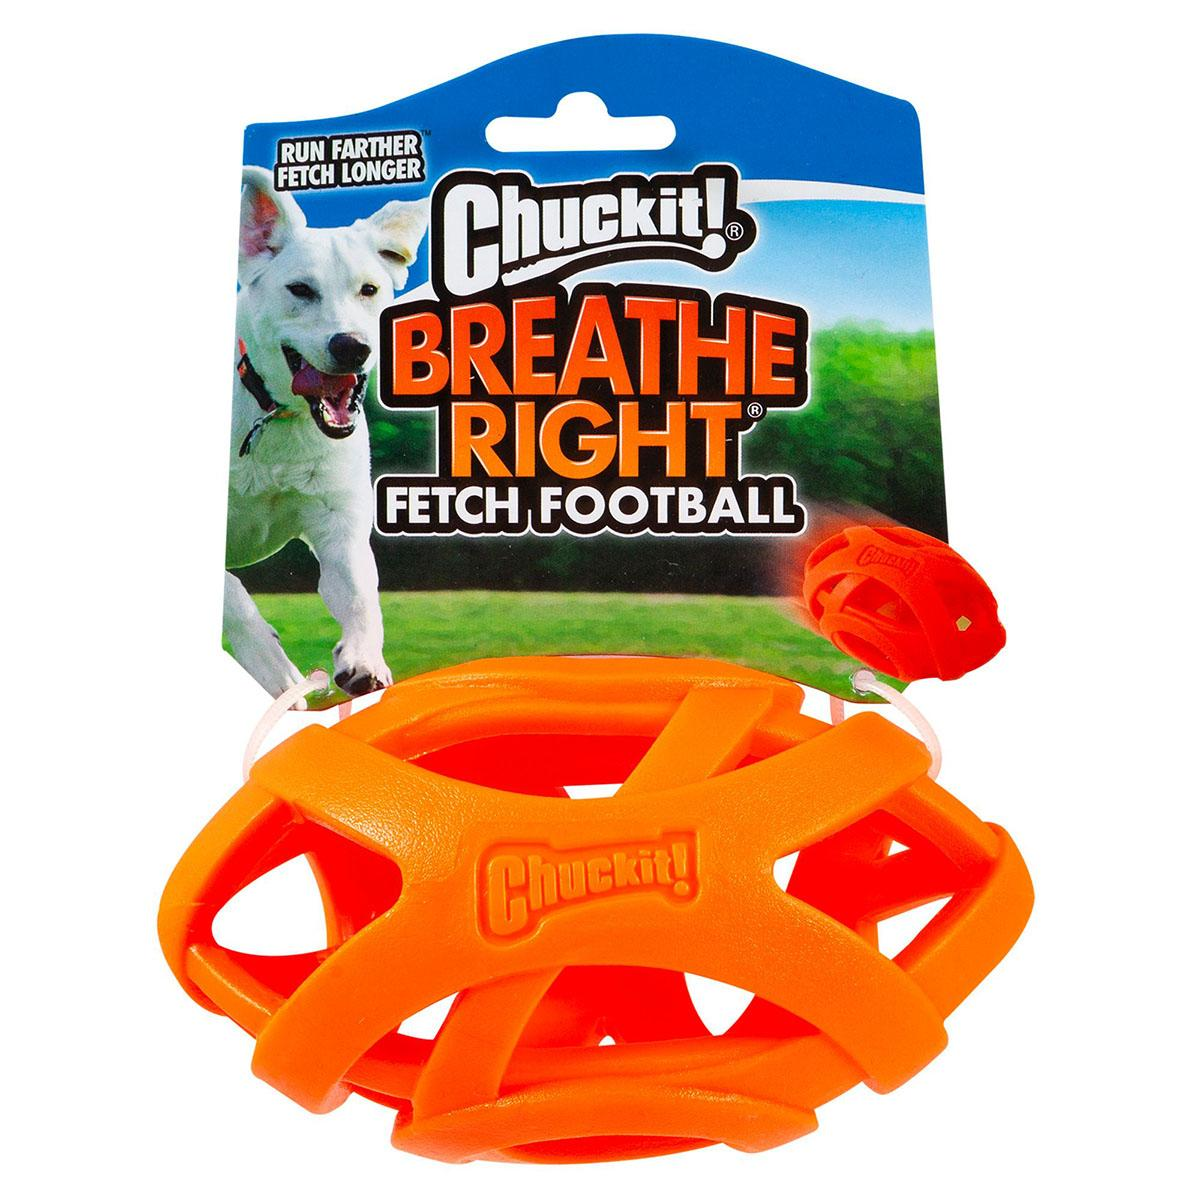 Chuckit! Breathe Right Fetch Football for Dogs